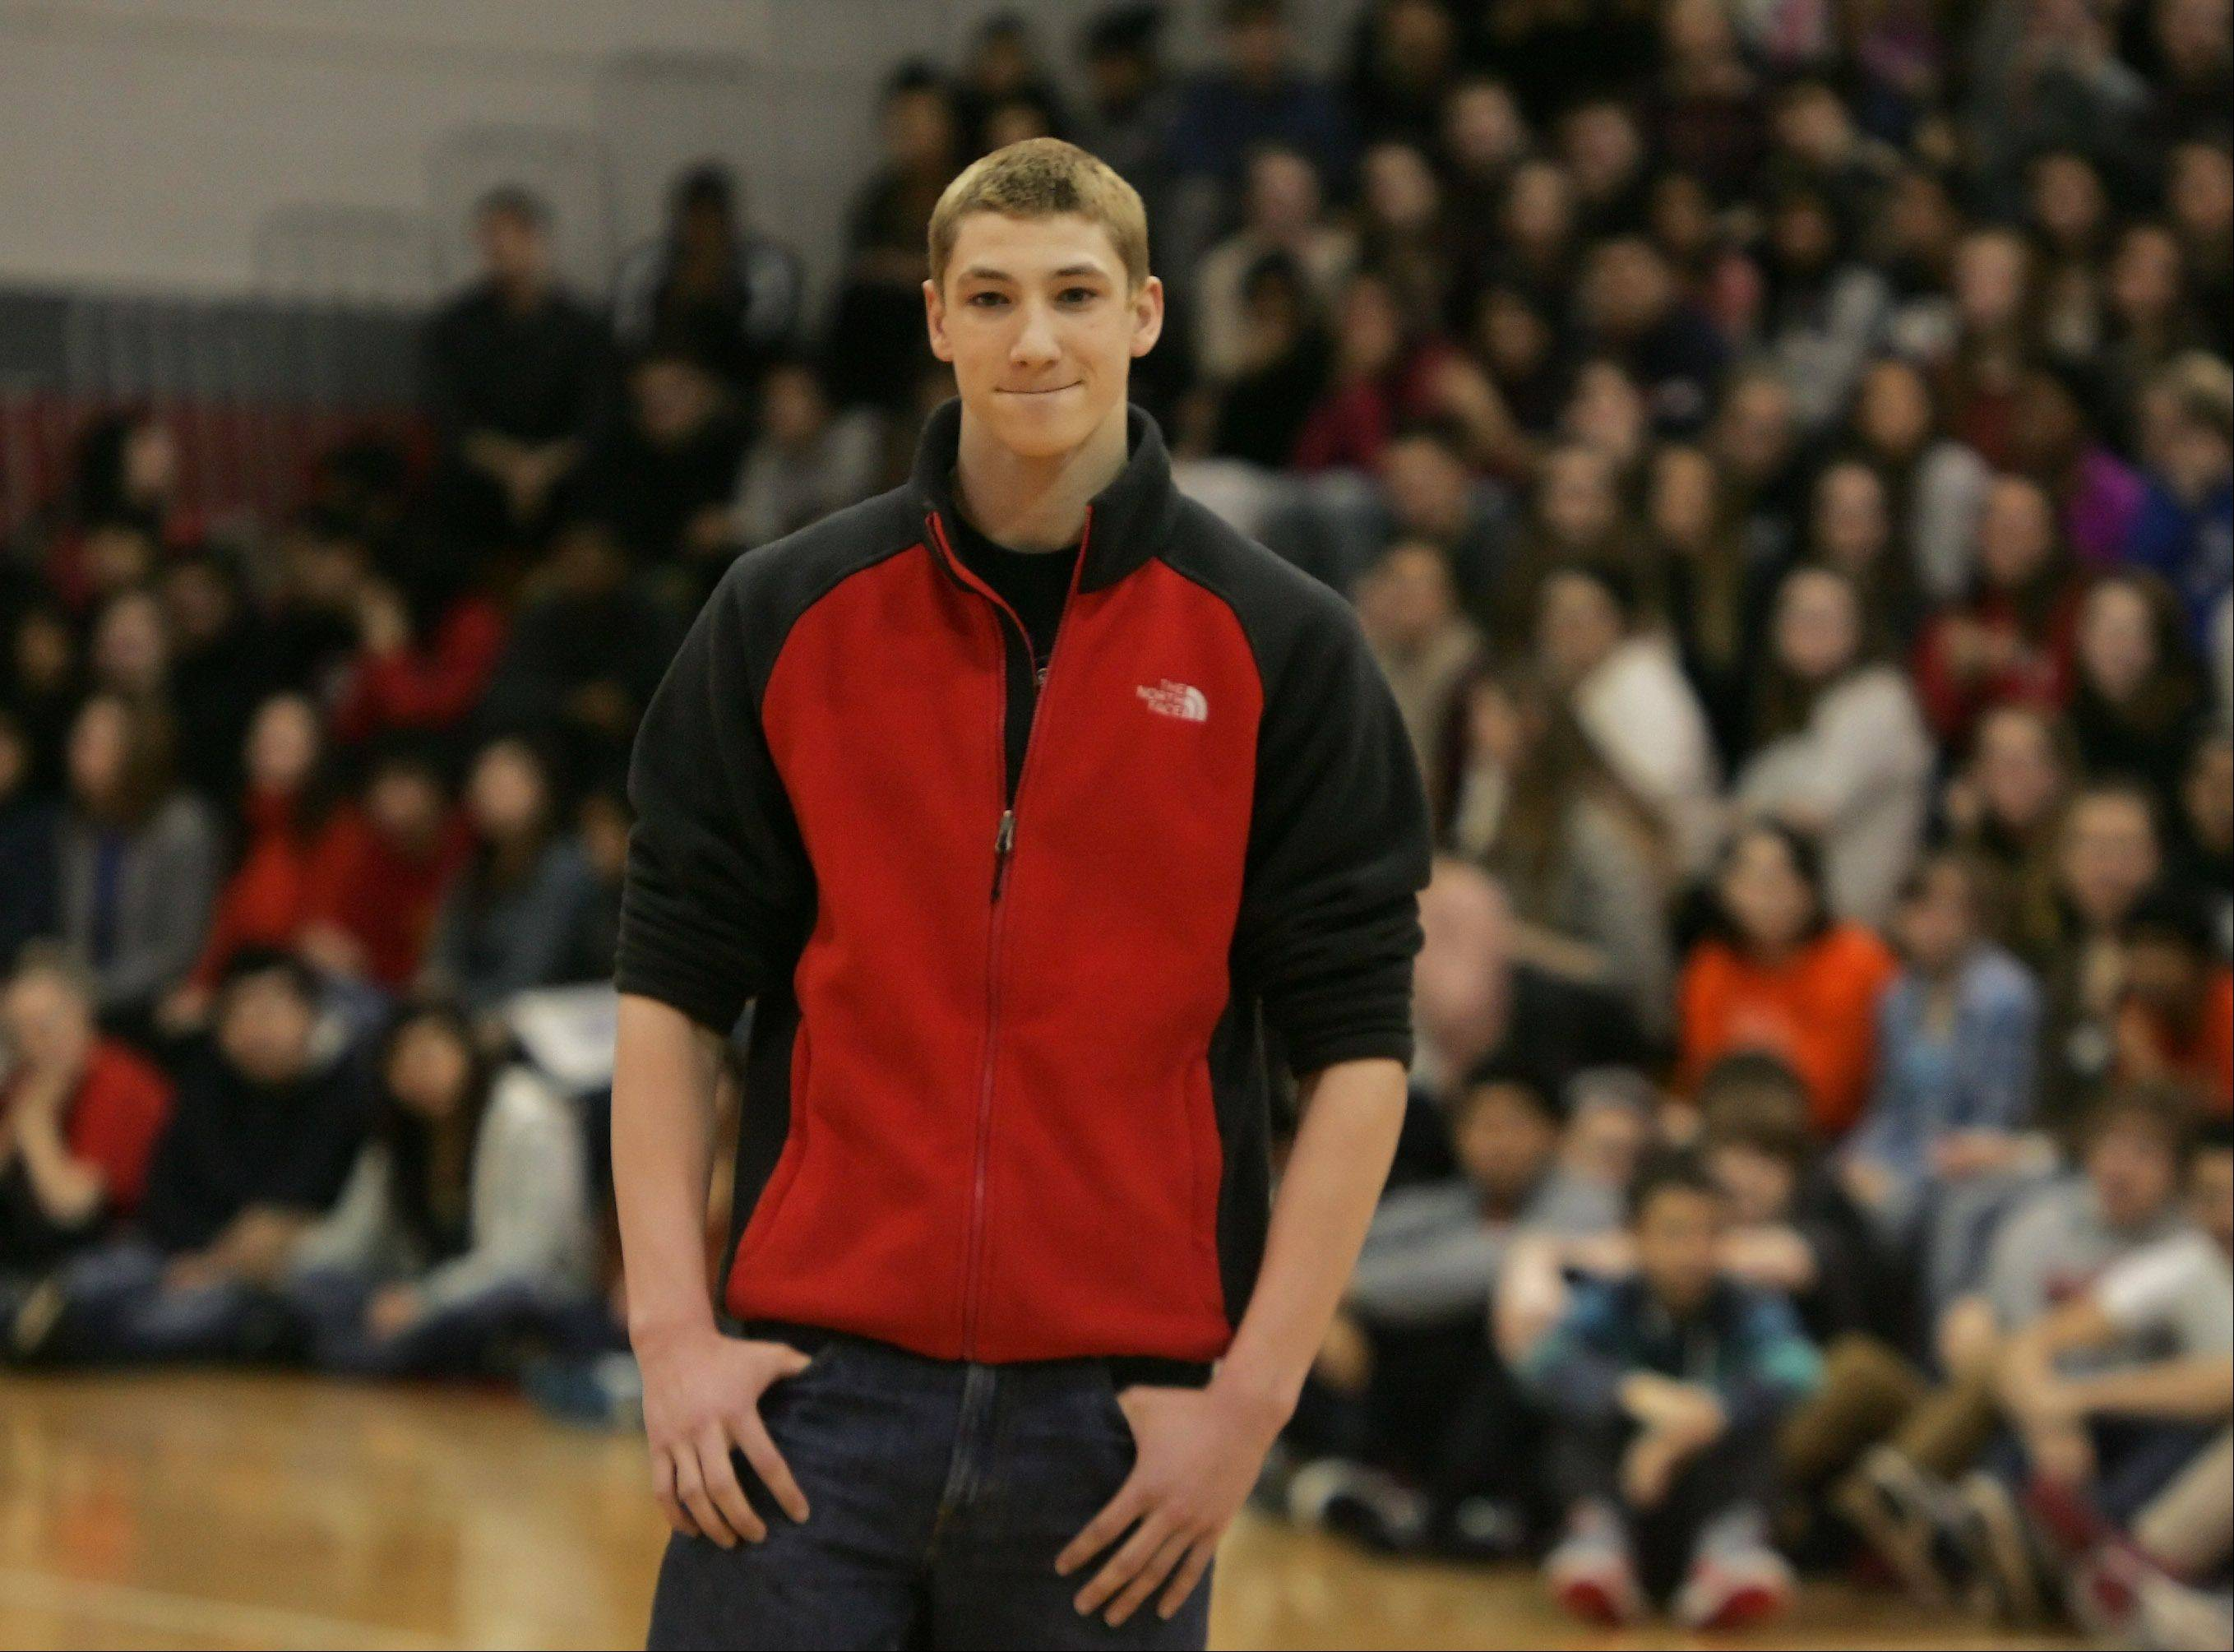 Connor Black is honored at an all-school assembly at Mundelein after breaking state and national records at the state swimming meet. Black, the Daily Herald's Lake County male athlete of the year, set a state record in the 50 freestyle and broke state and national records in the 100 butterfly.